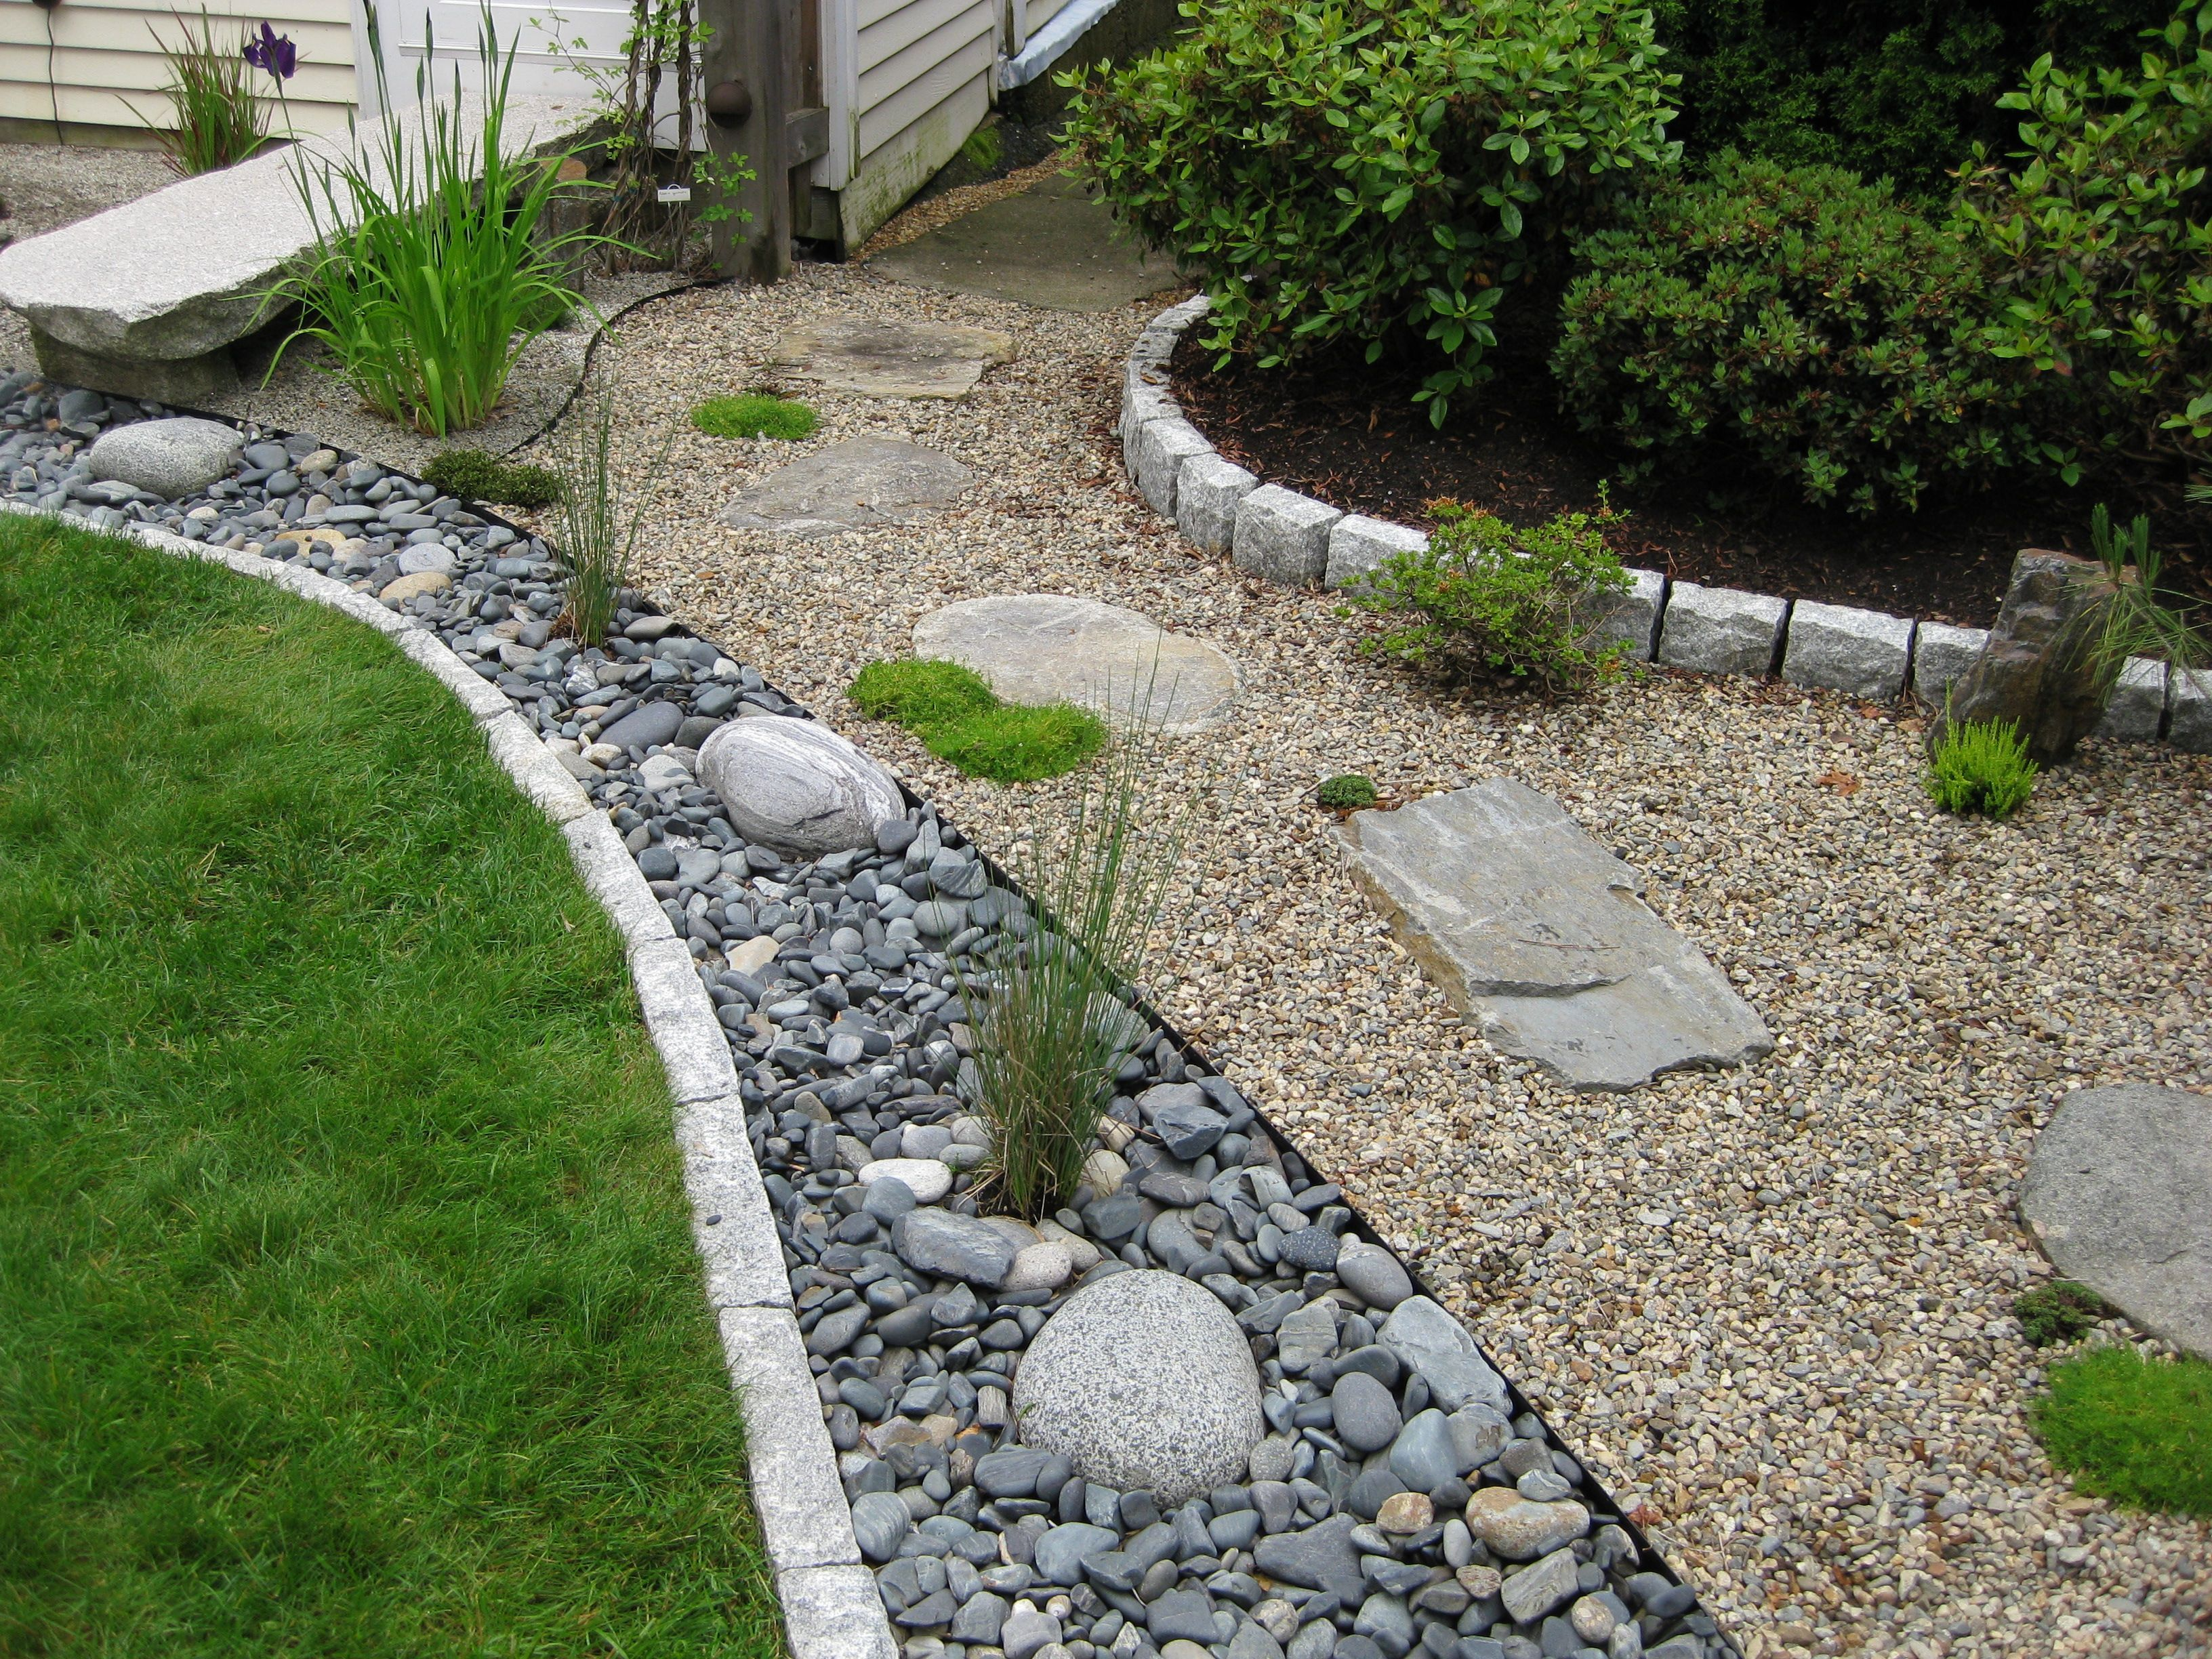 Garden Design Dry River Bed pocket garden tour | dry creek, dry creek bed and lawn